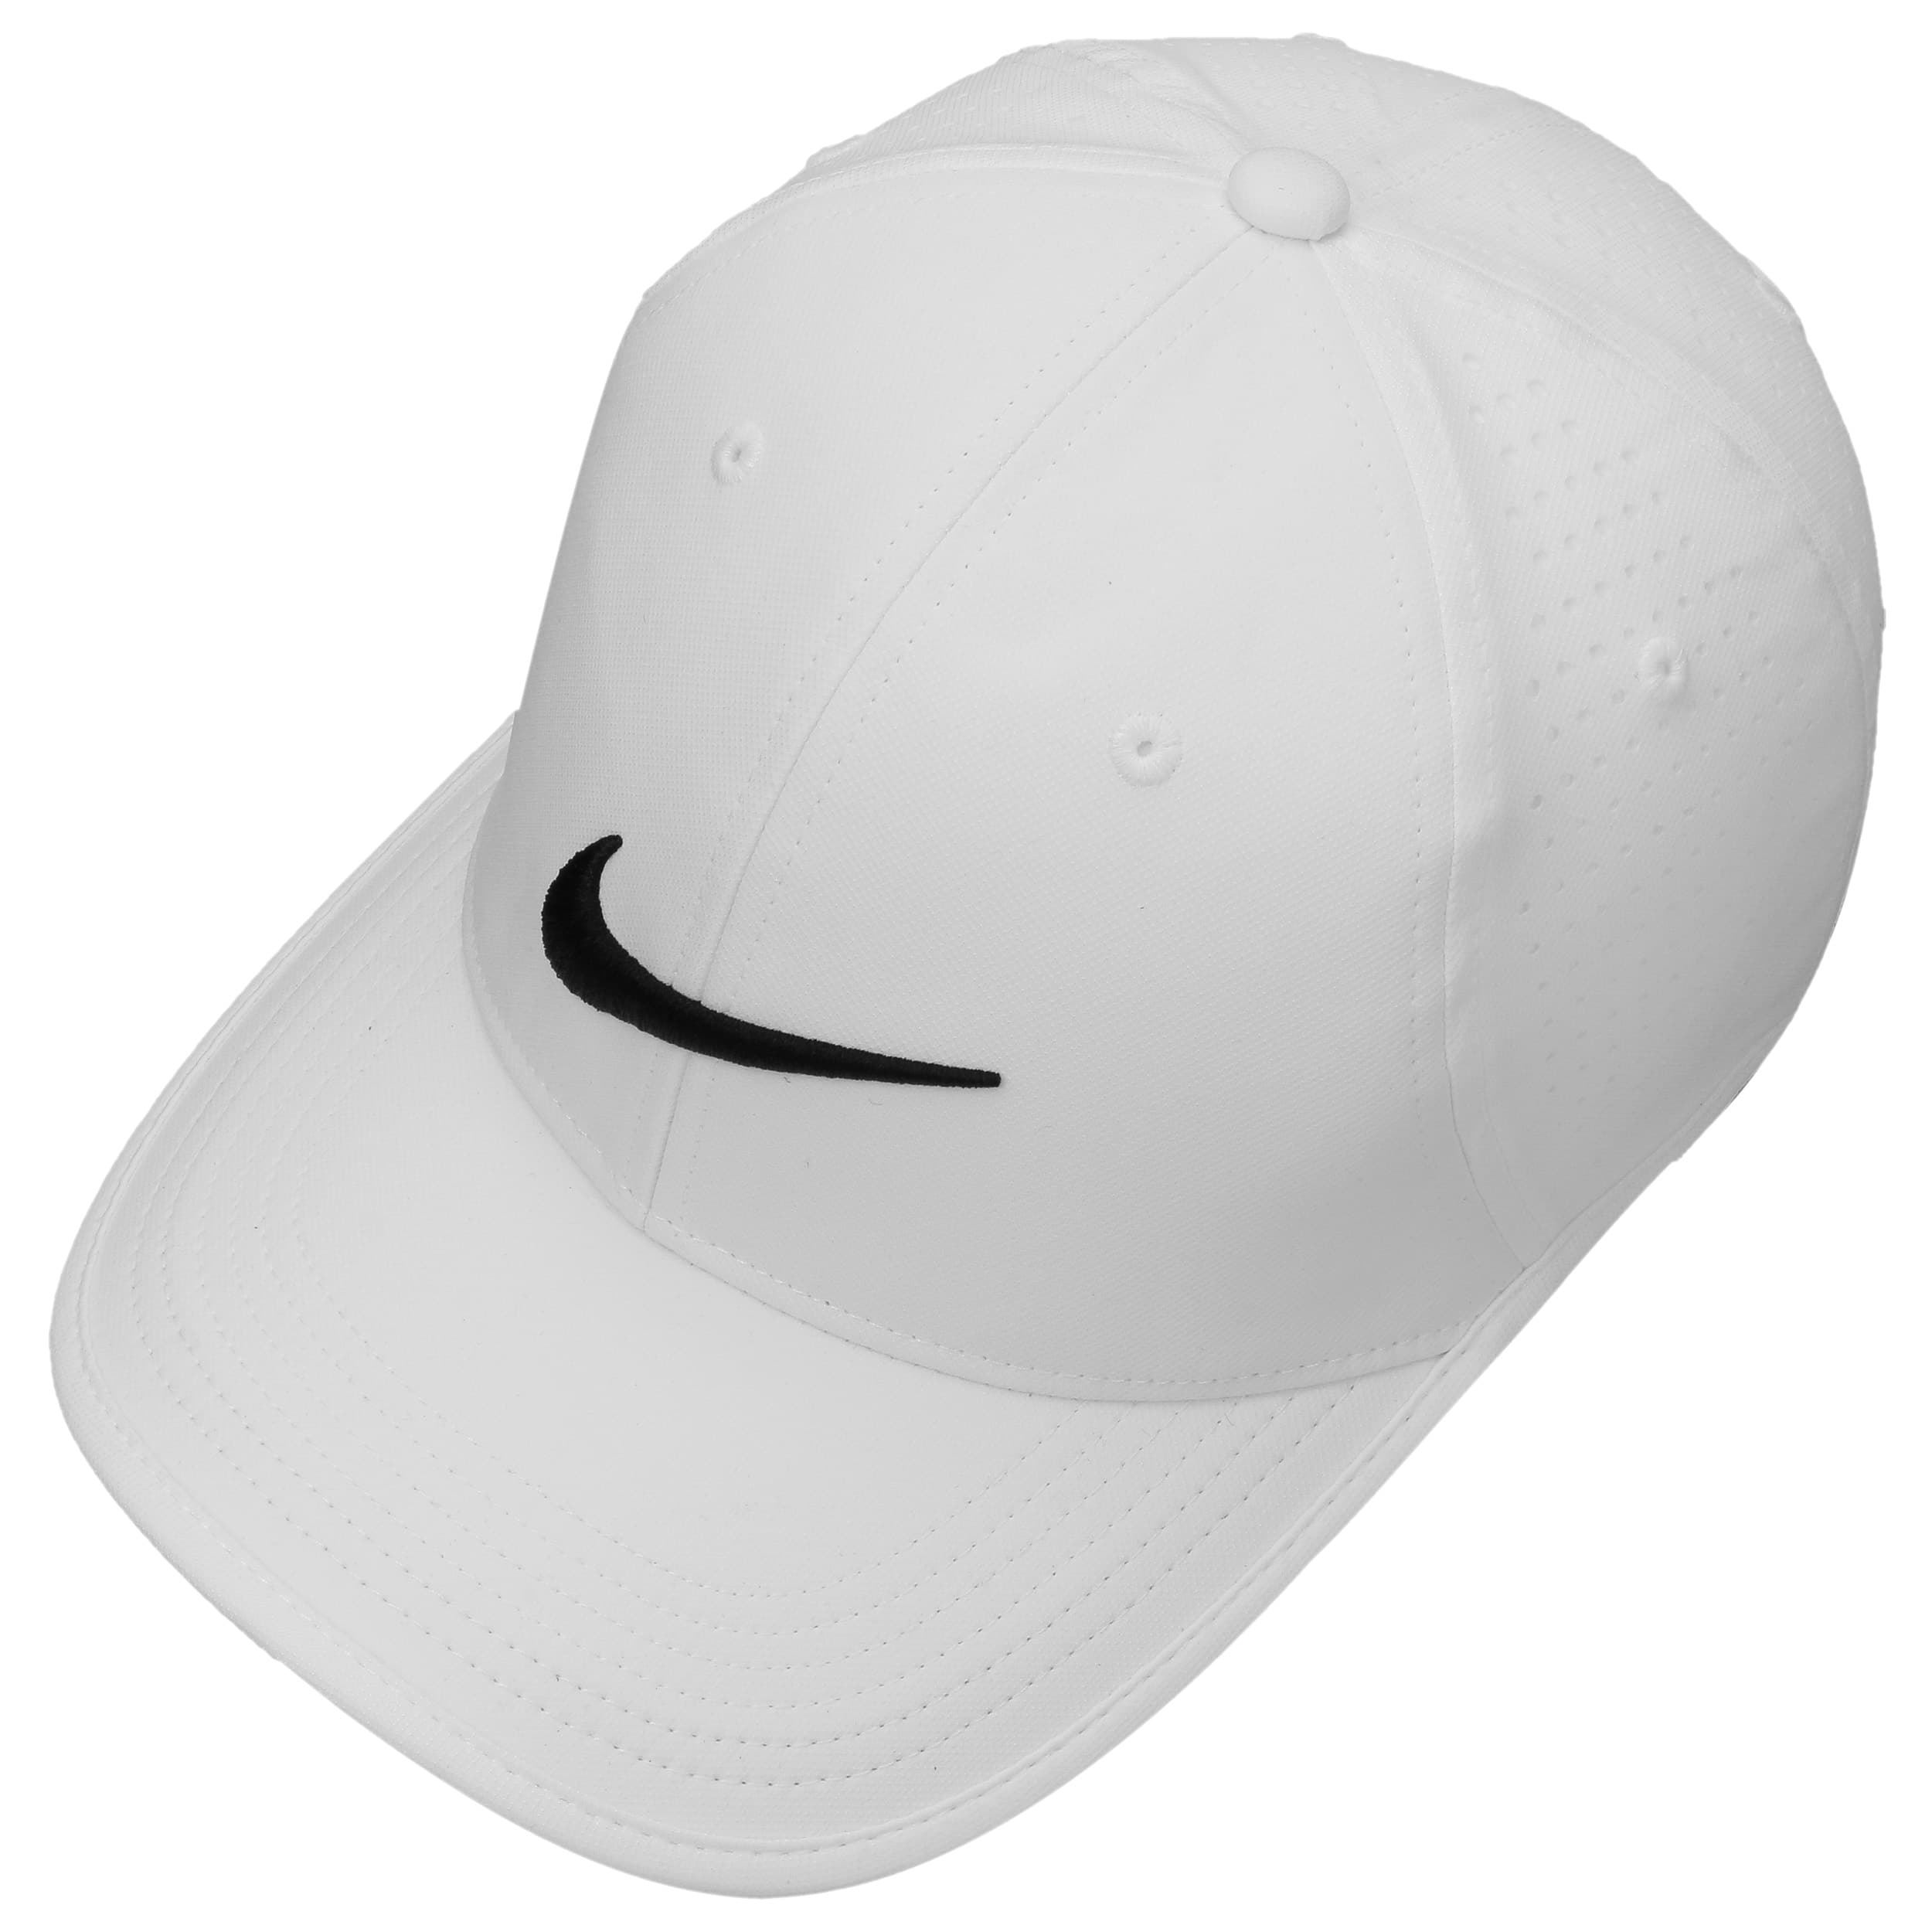 4ef60f2ee8a ... Ultralight Tour Perforation Cap by Nike - light blue 1 ...